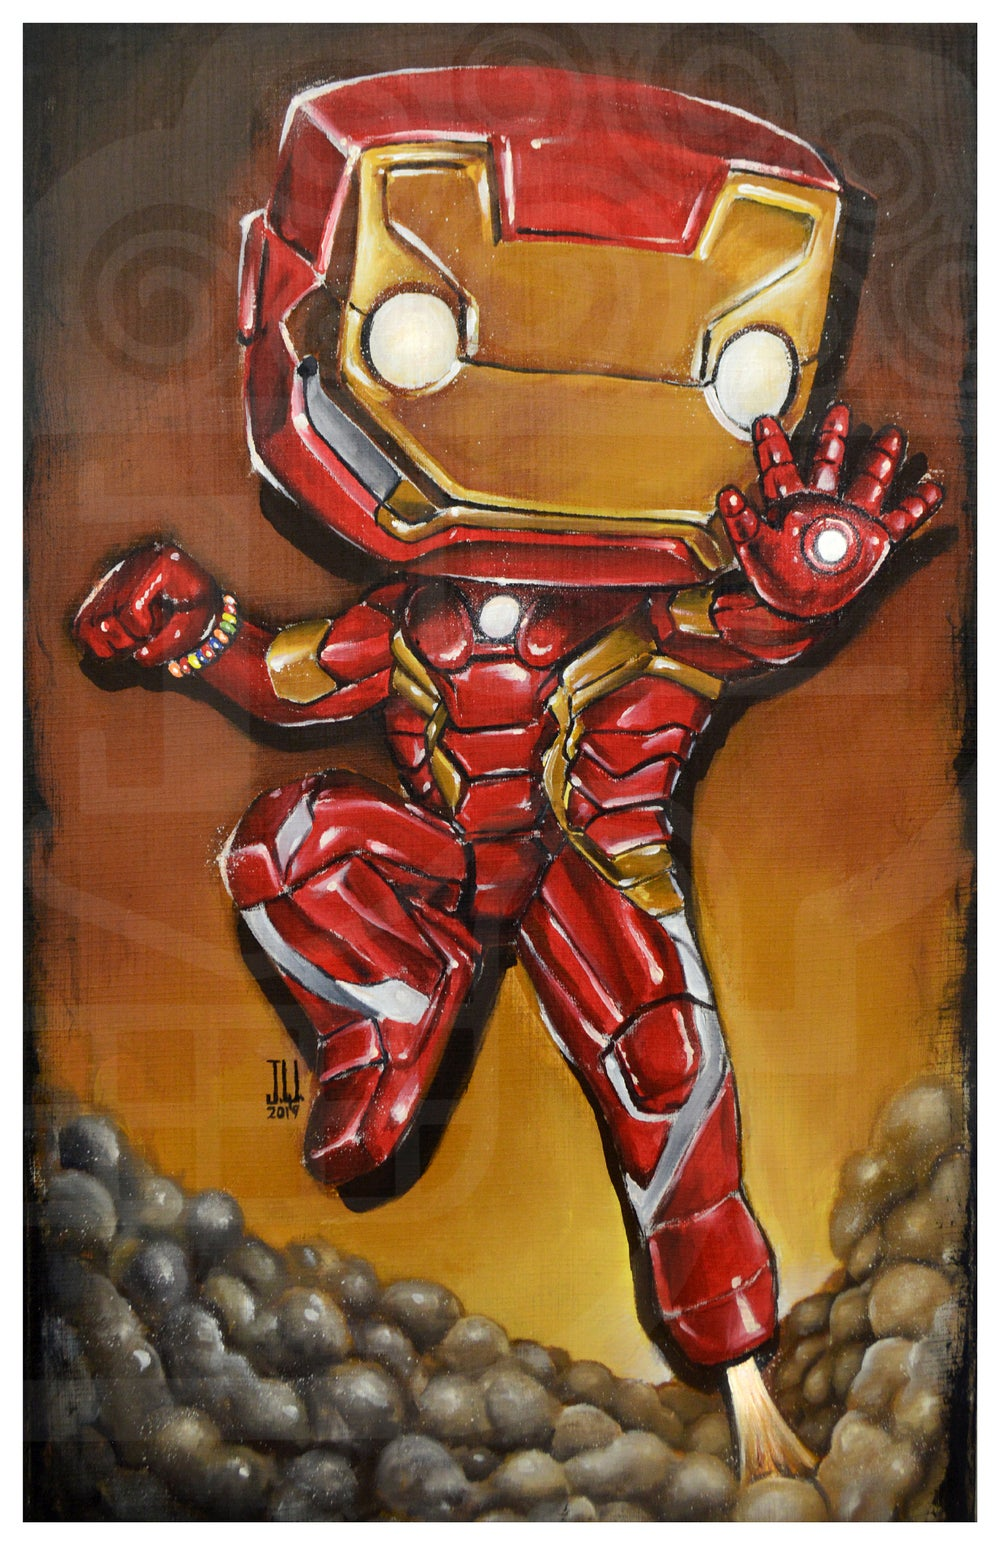 Image of I am IRON POP MAN Jeremy Worst tony start avengers marvel comics painting fan art armor suit red gol